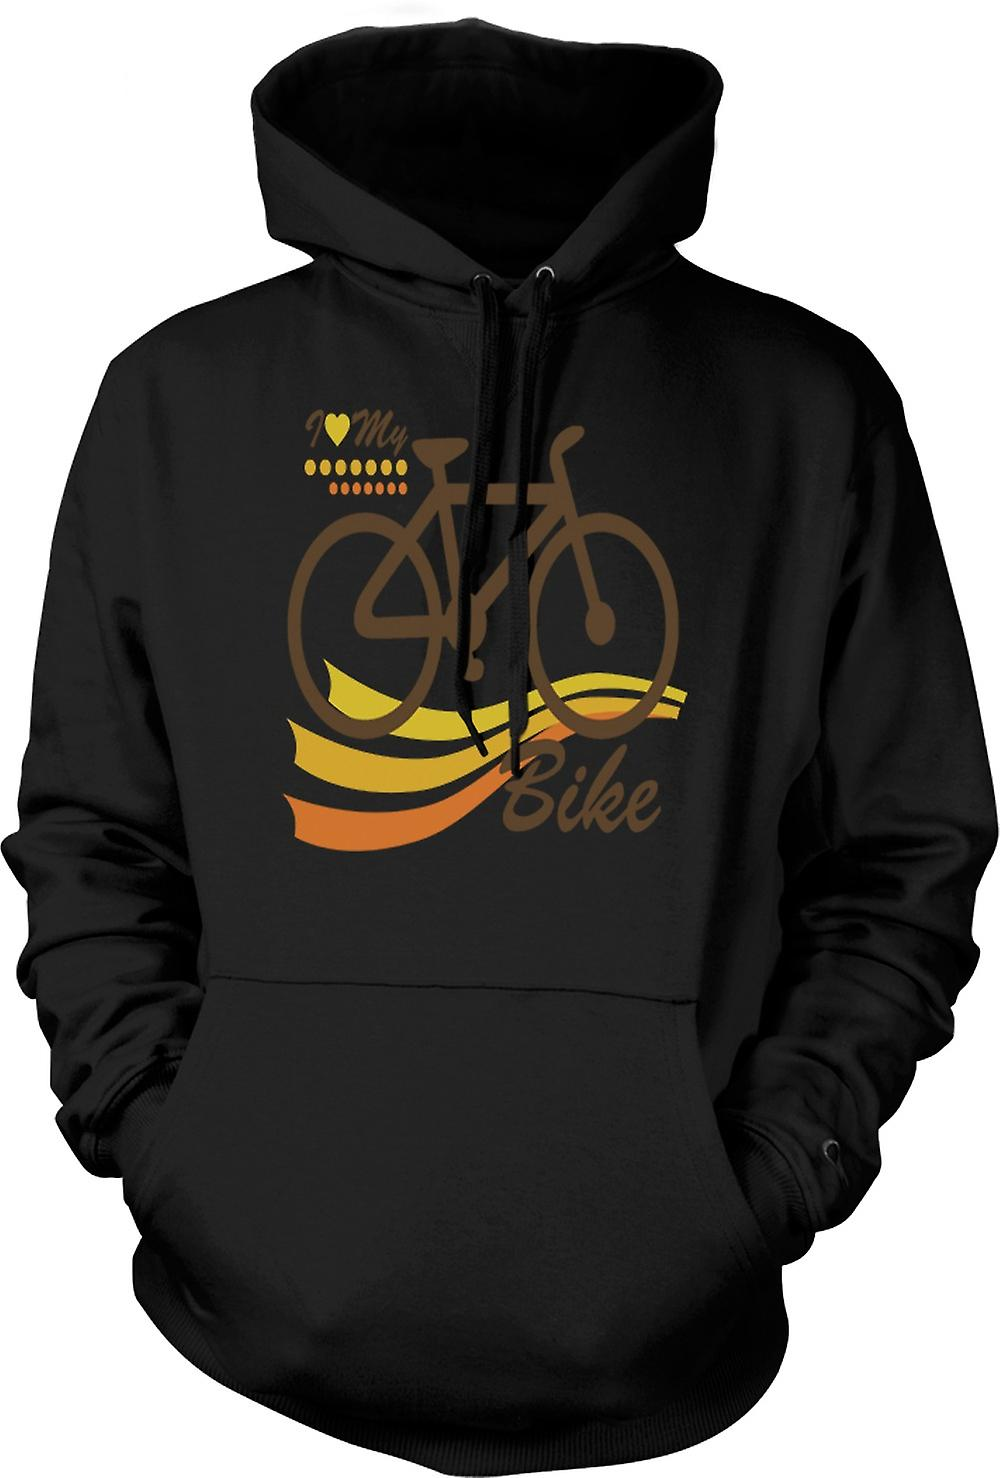 Mens Hoodie - I Love My Bike - Funny